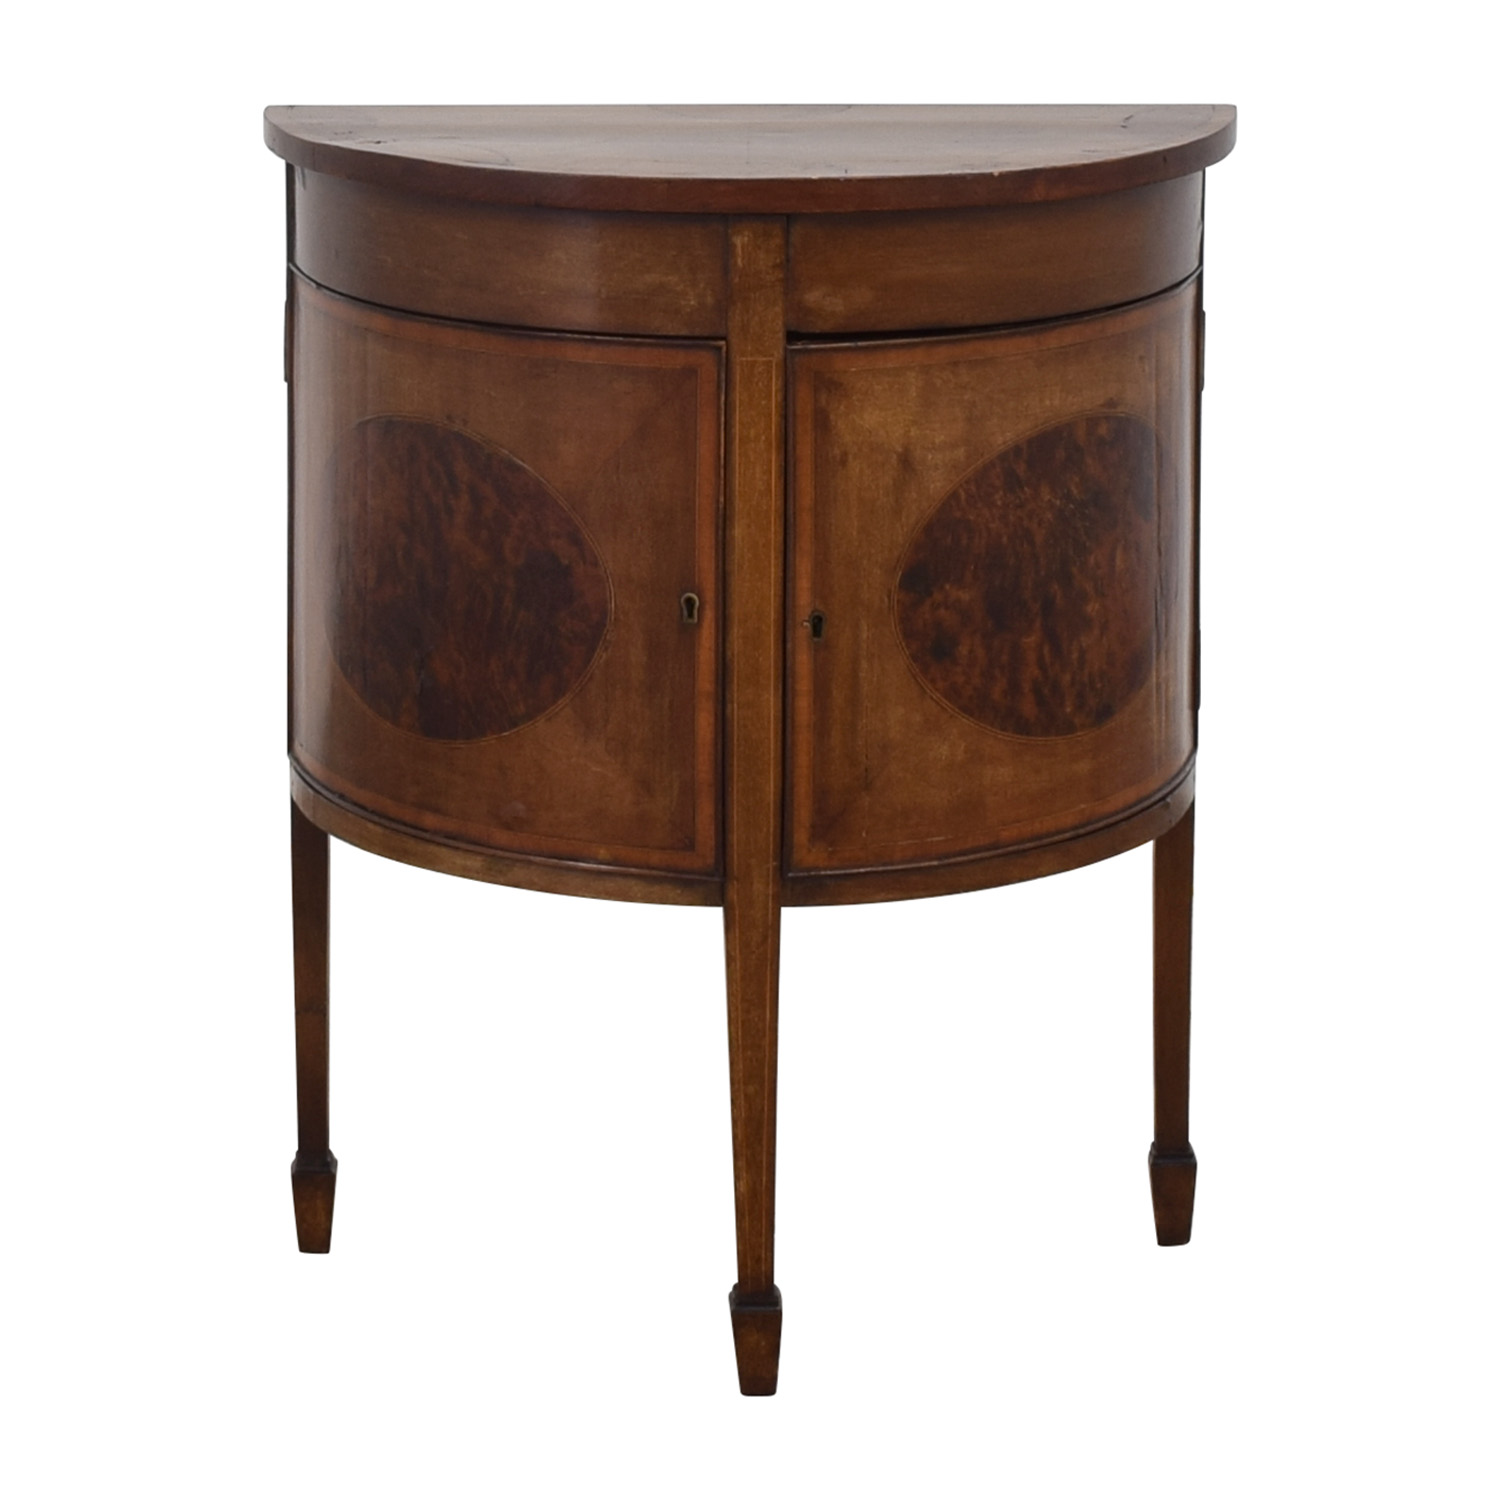 ABC Carpet & Home Demilune Console Cabinet / Cabinets & Sideboards